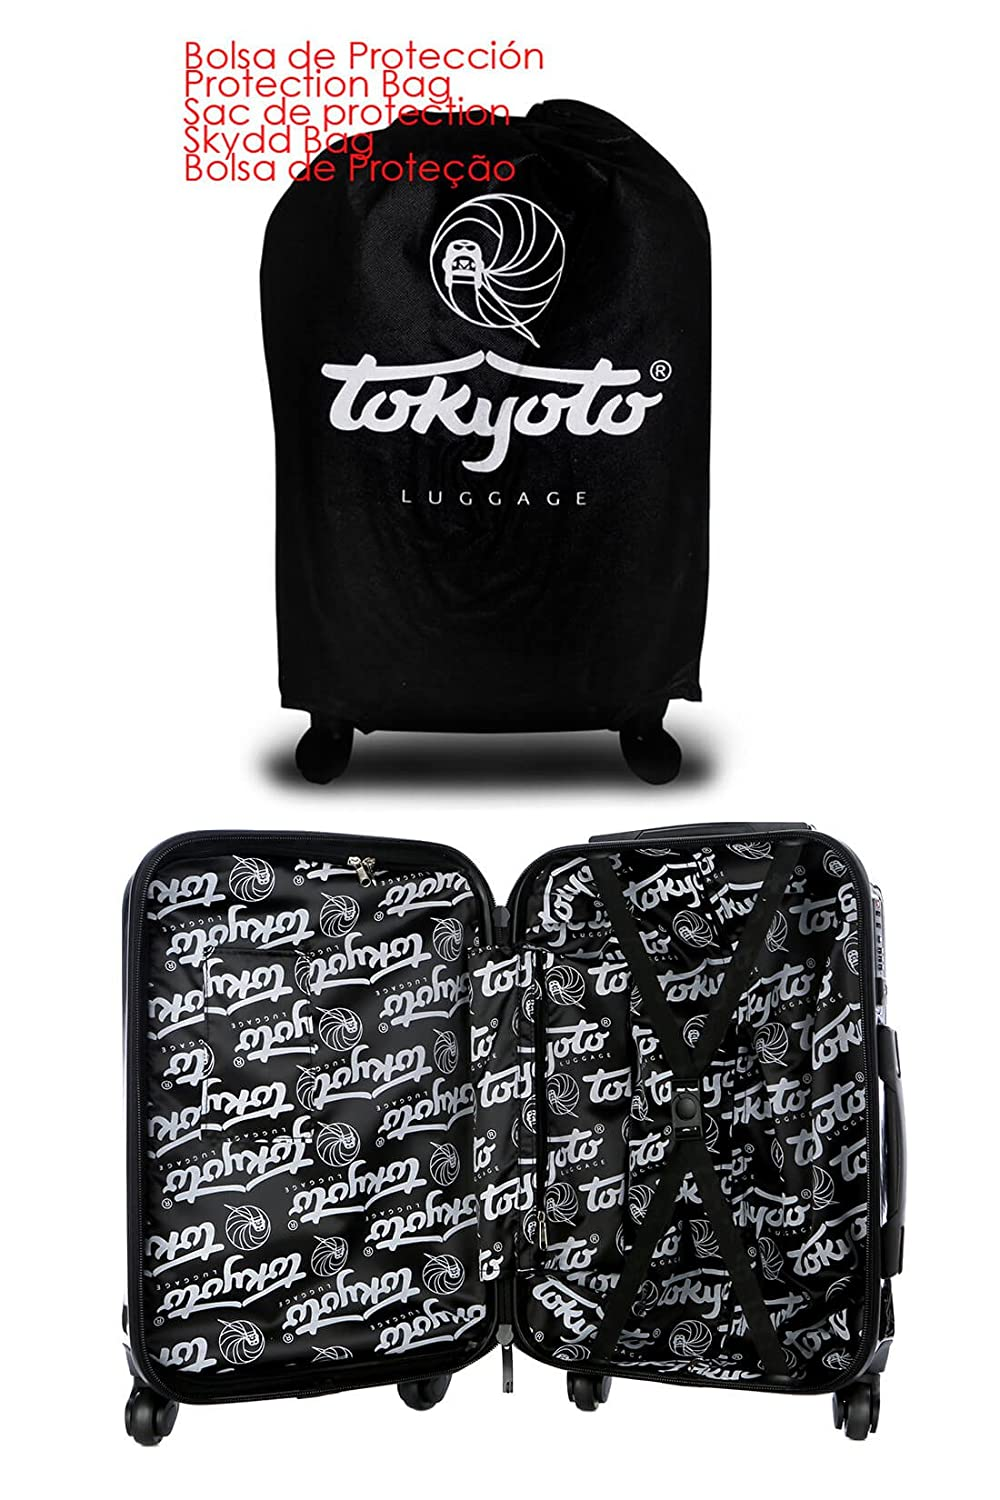 Amazon.com | TOKYOTO Luggage Carry-on Trolley Cabin Suitcase Travel Bag - BLACK EMPIRE (ONLY TROLLEY) | Carry-Ons